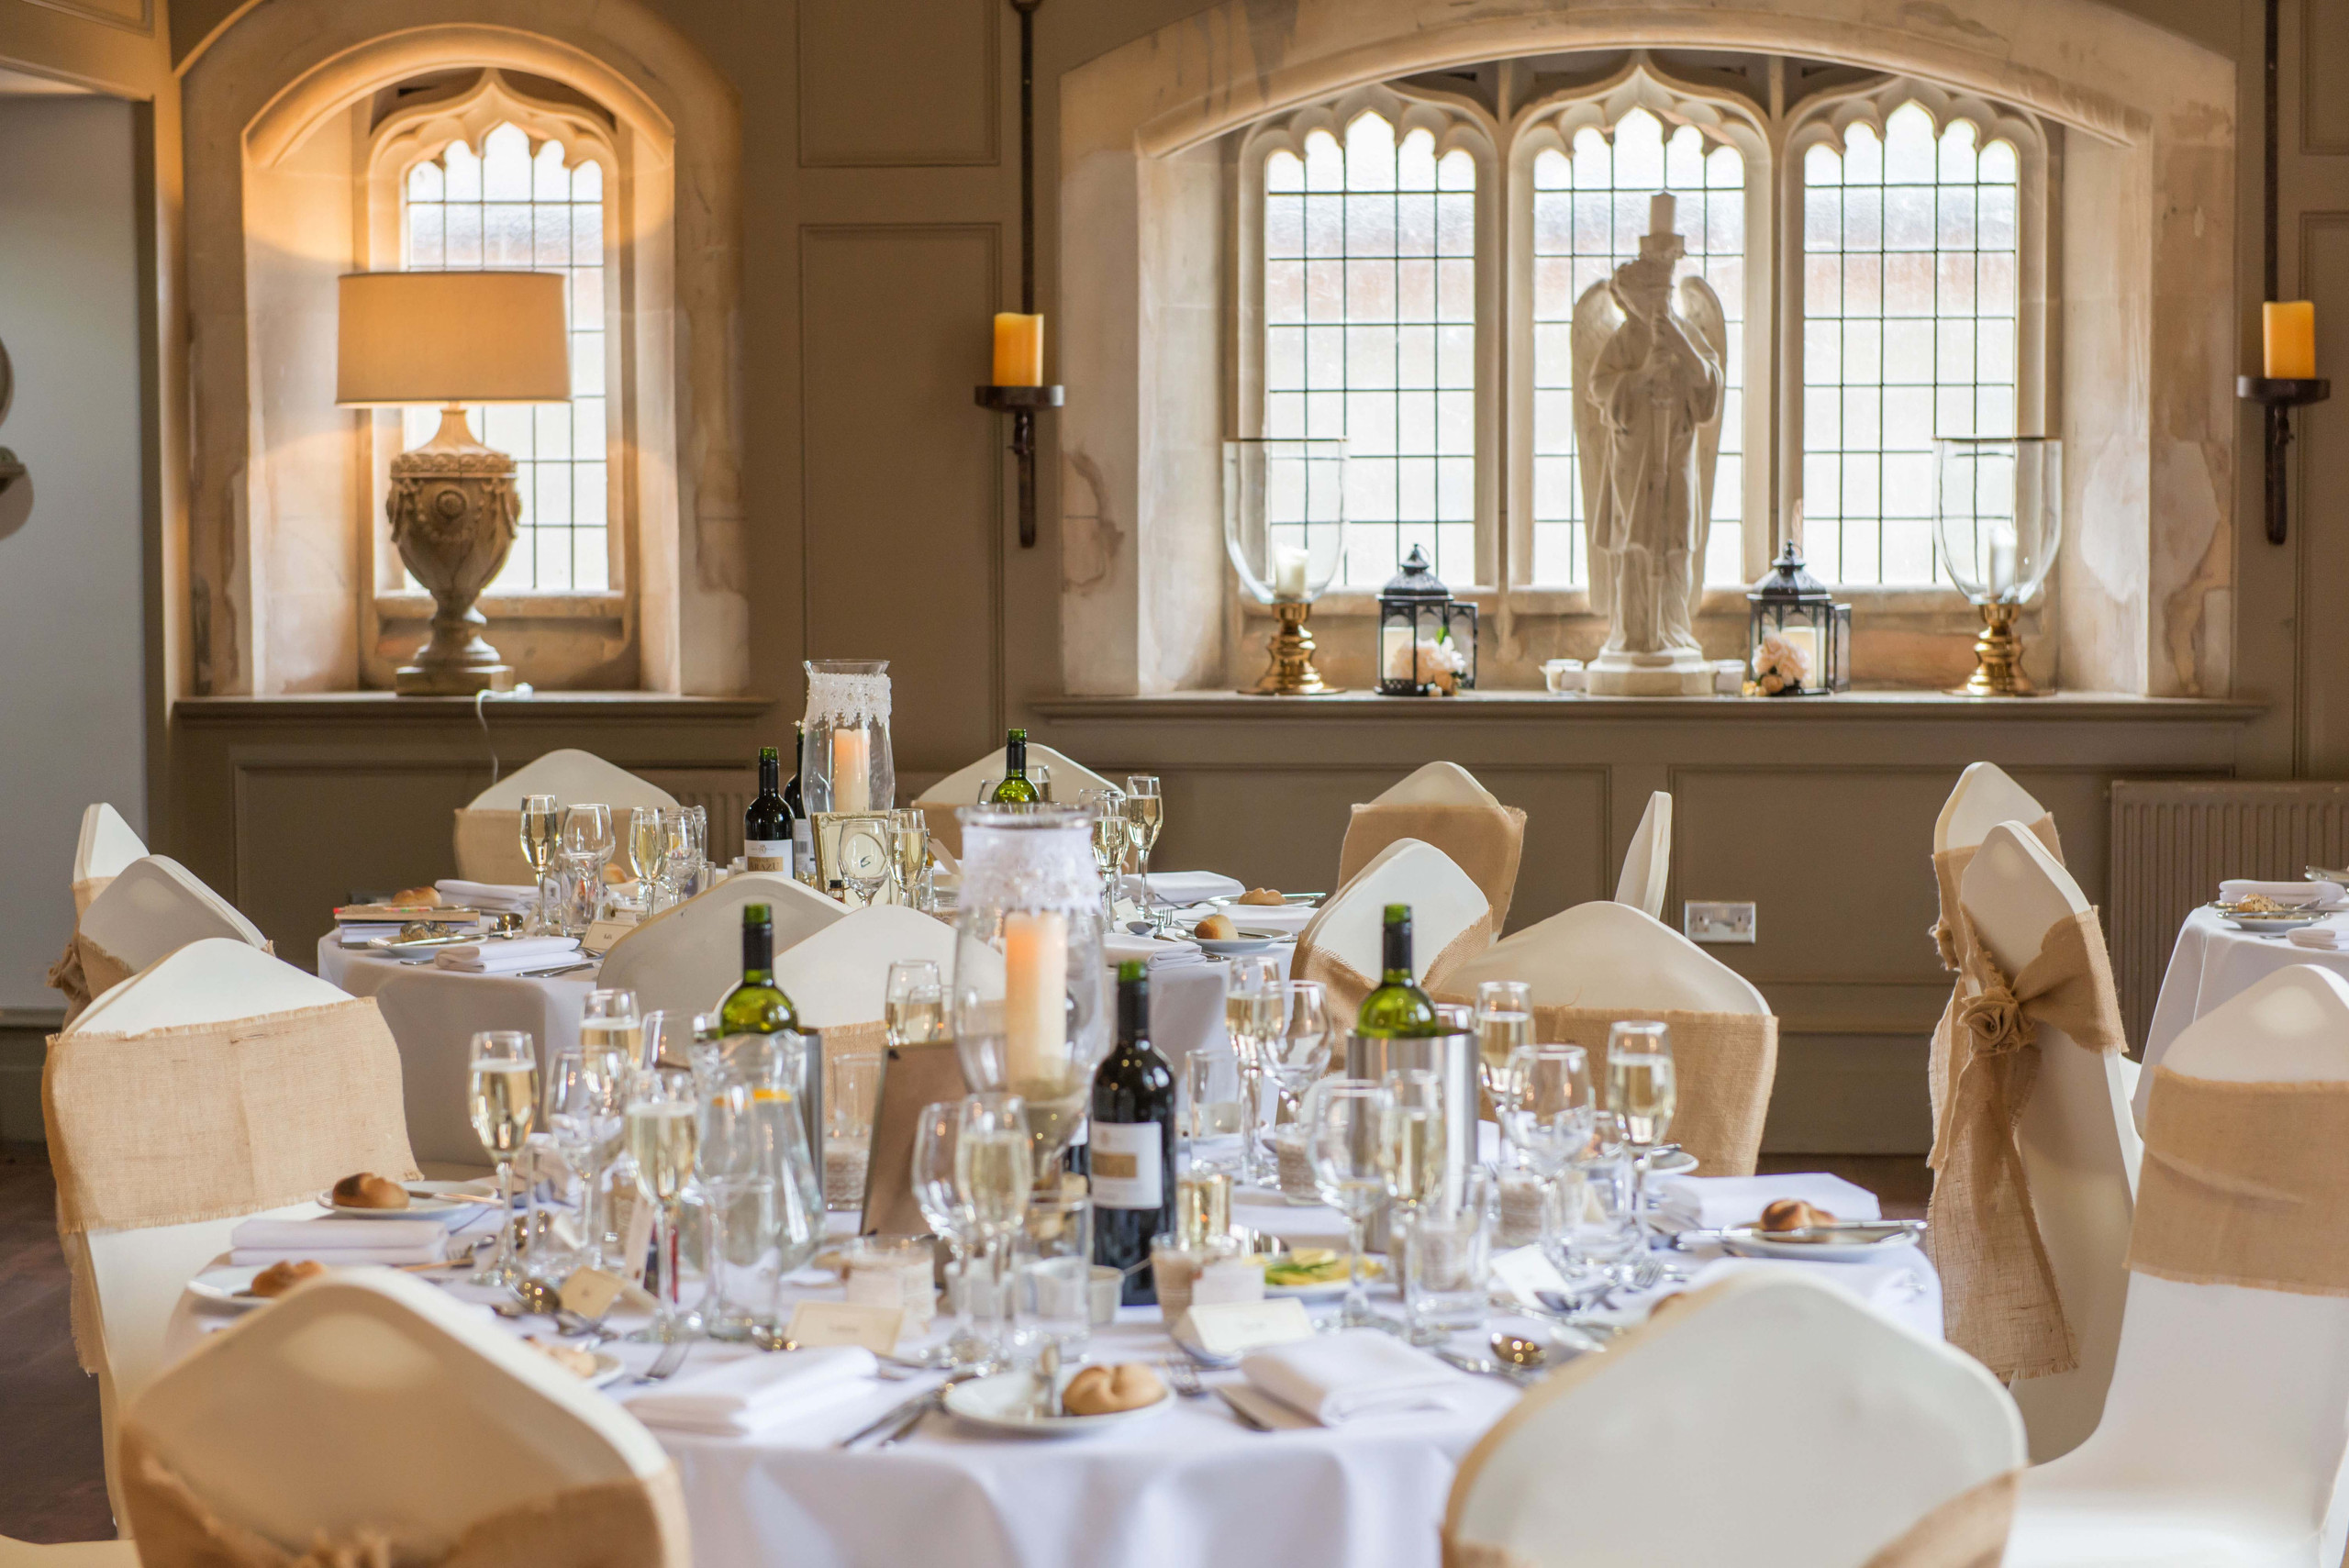 Photography of wedding breakfast room decoration and layout in Ellingham Hall wedding venue in Northumberland